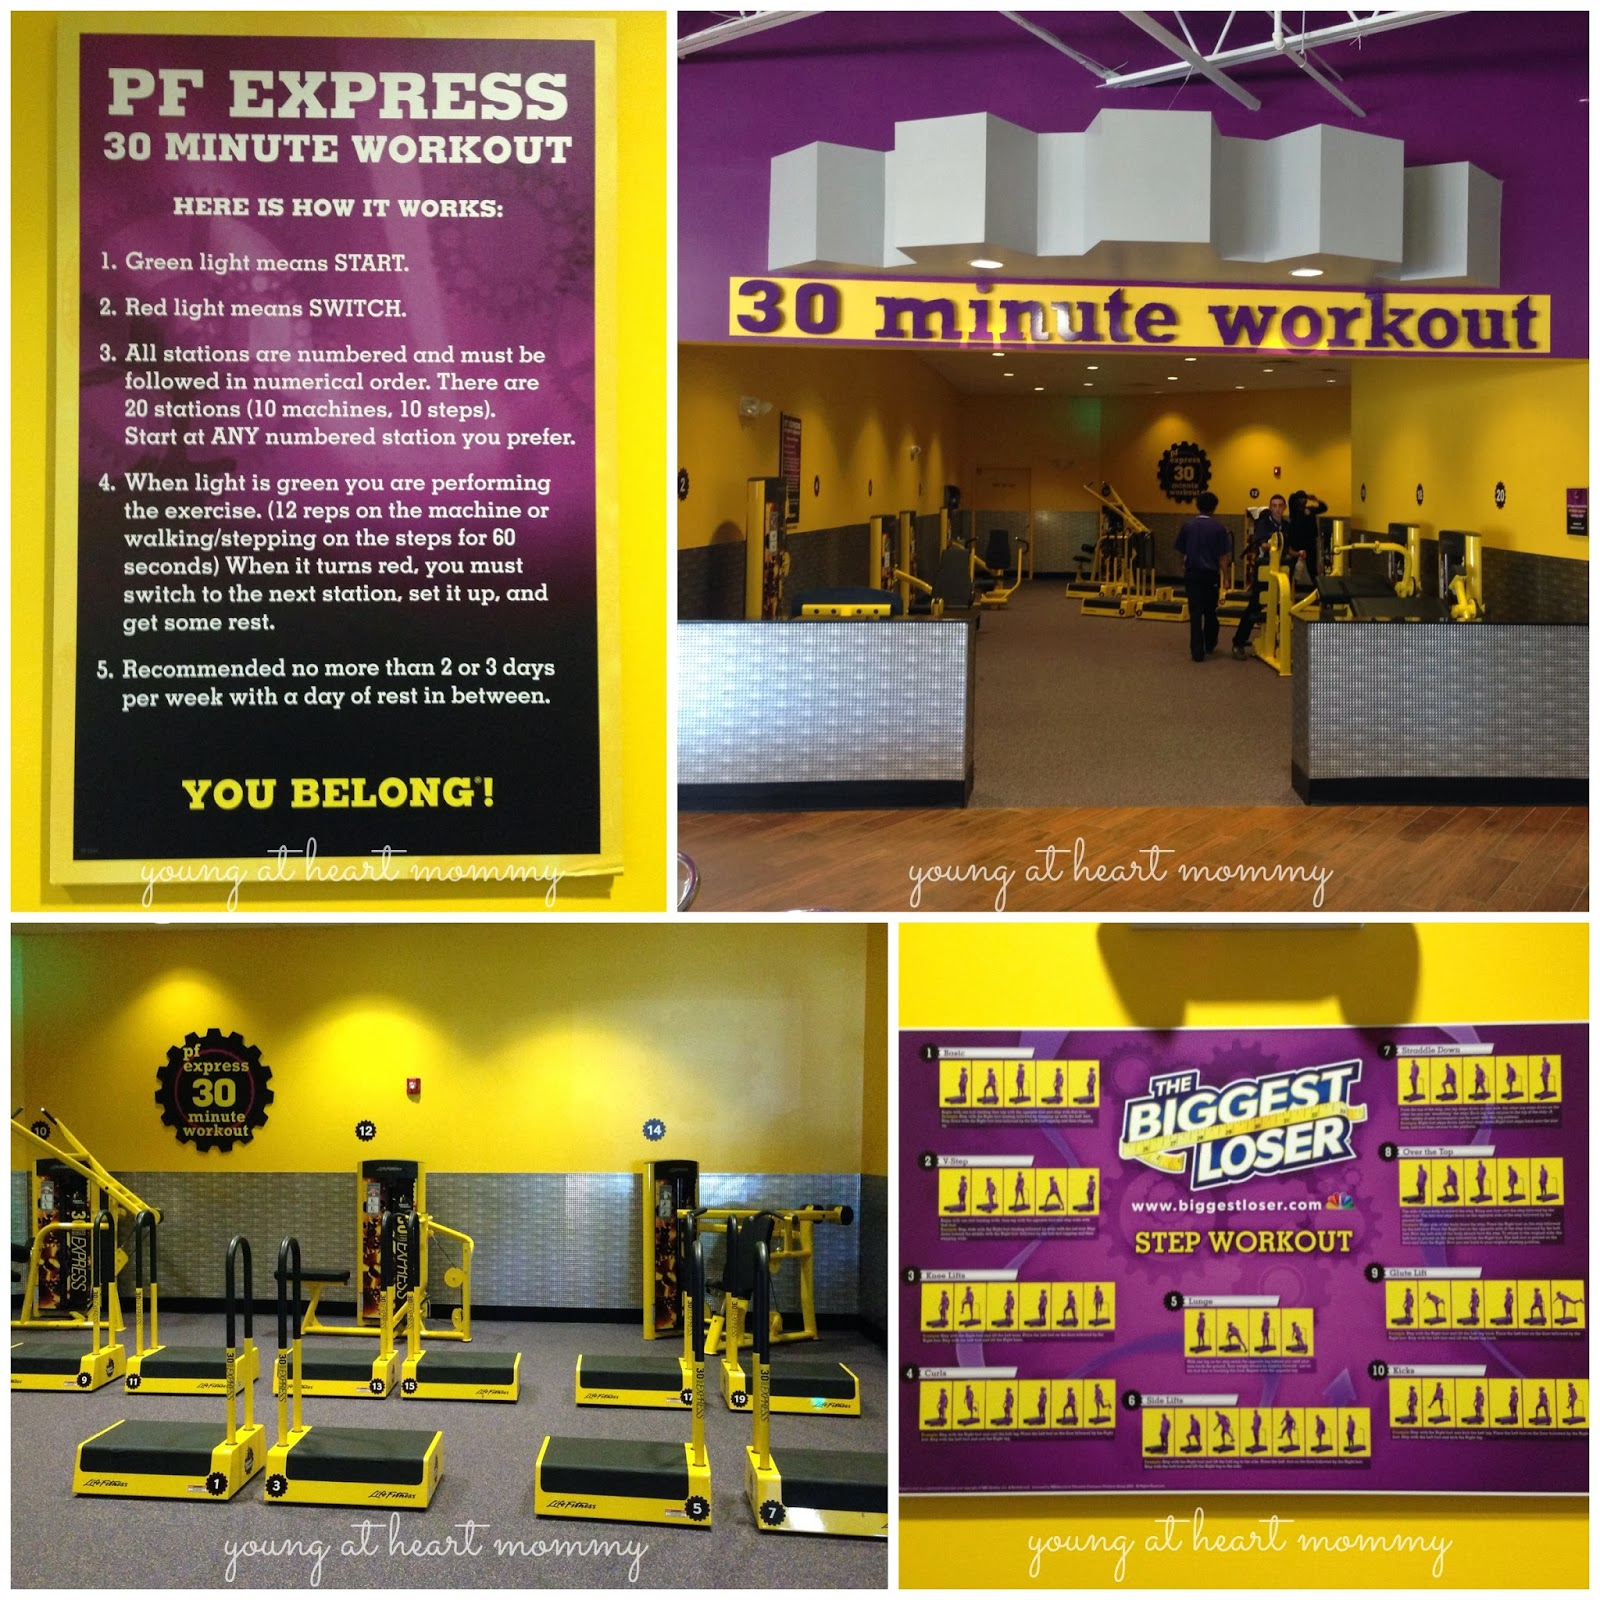 Get Fit At Planet Fitness In South Florida